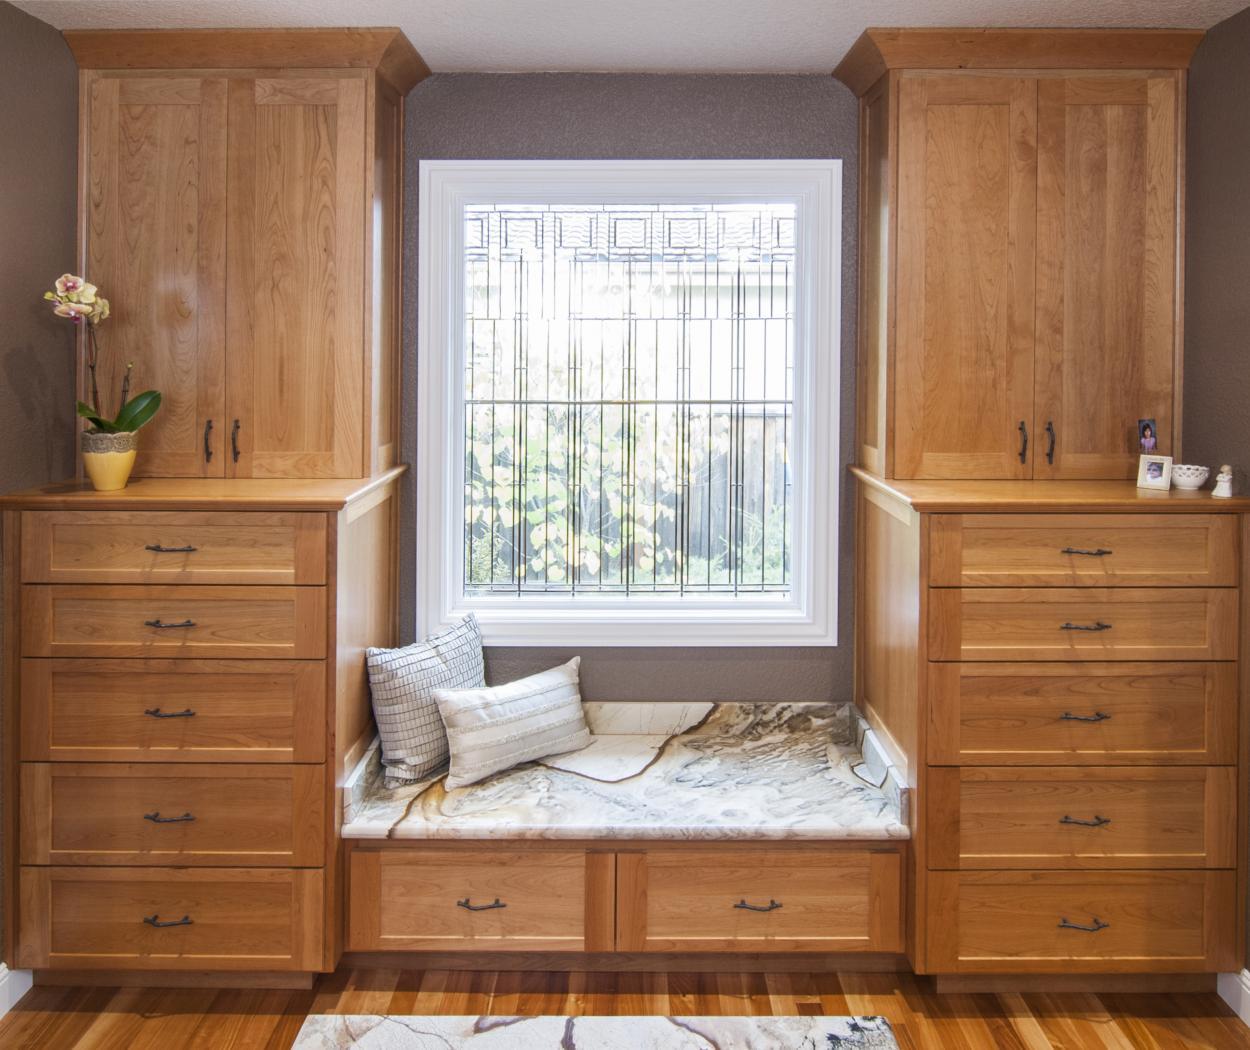 Transitional Bedroom, Shaker Style Built-In with a Window Bench Seat and a Beautiful Granite Countertop